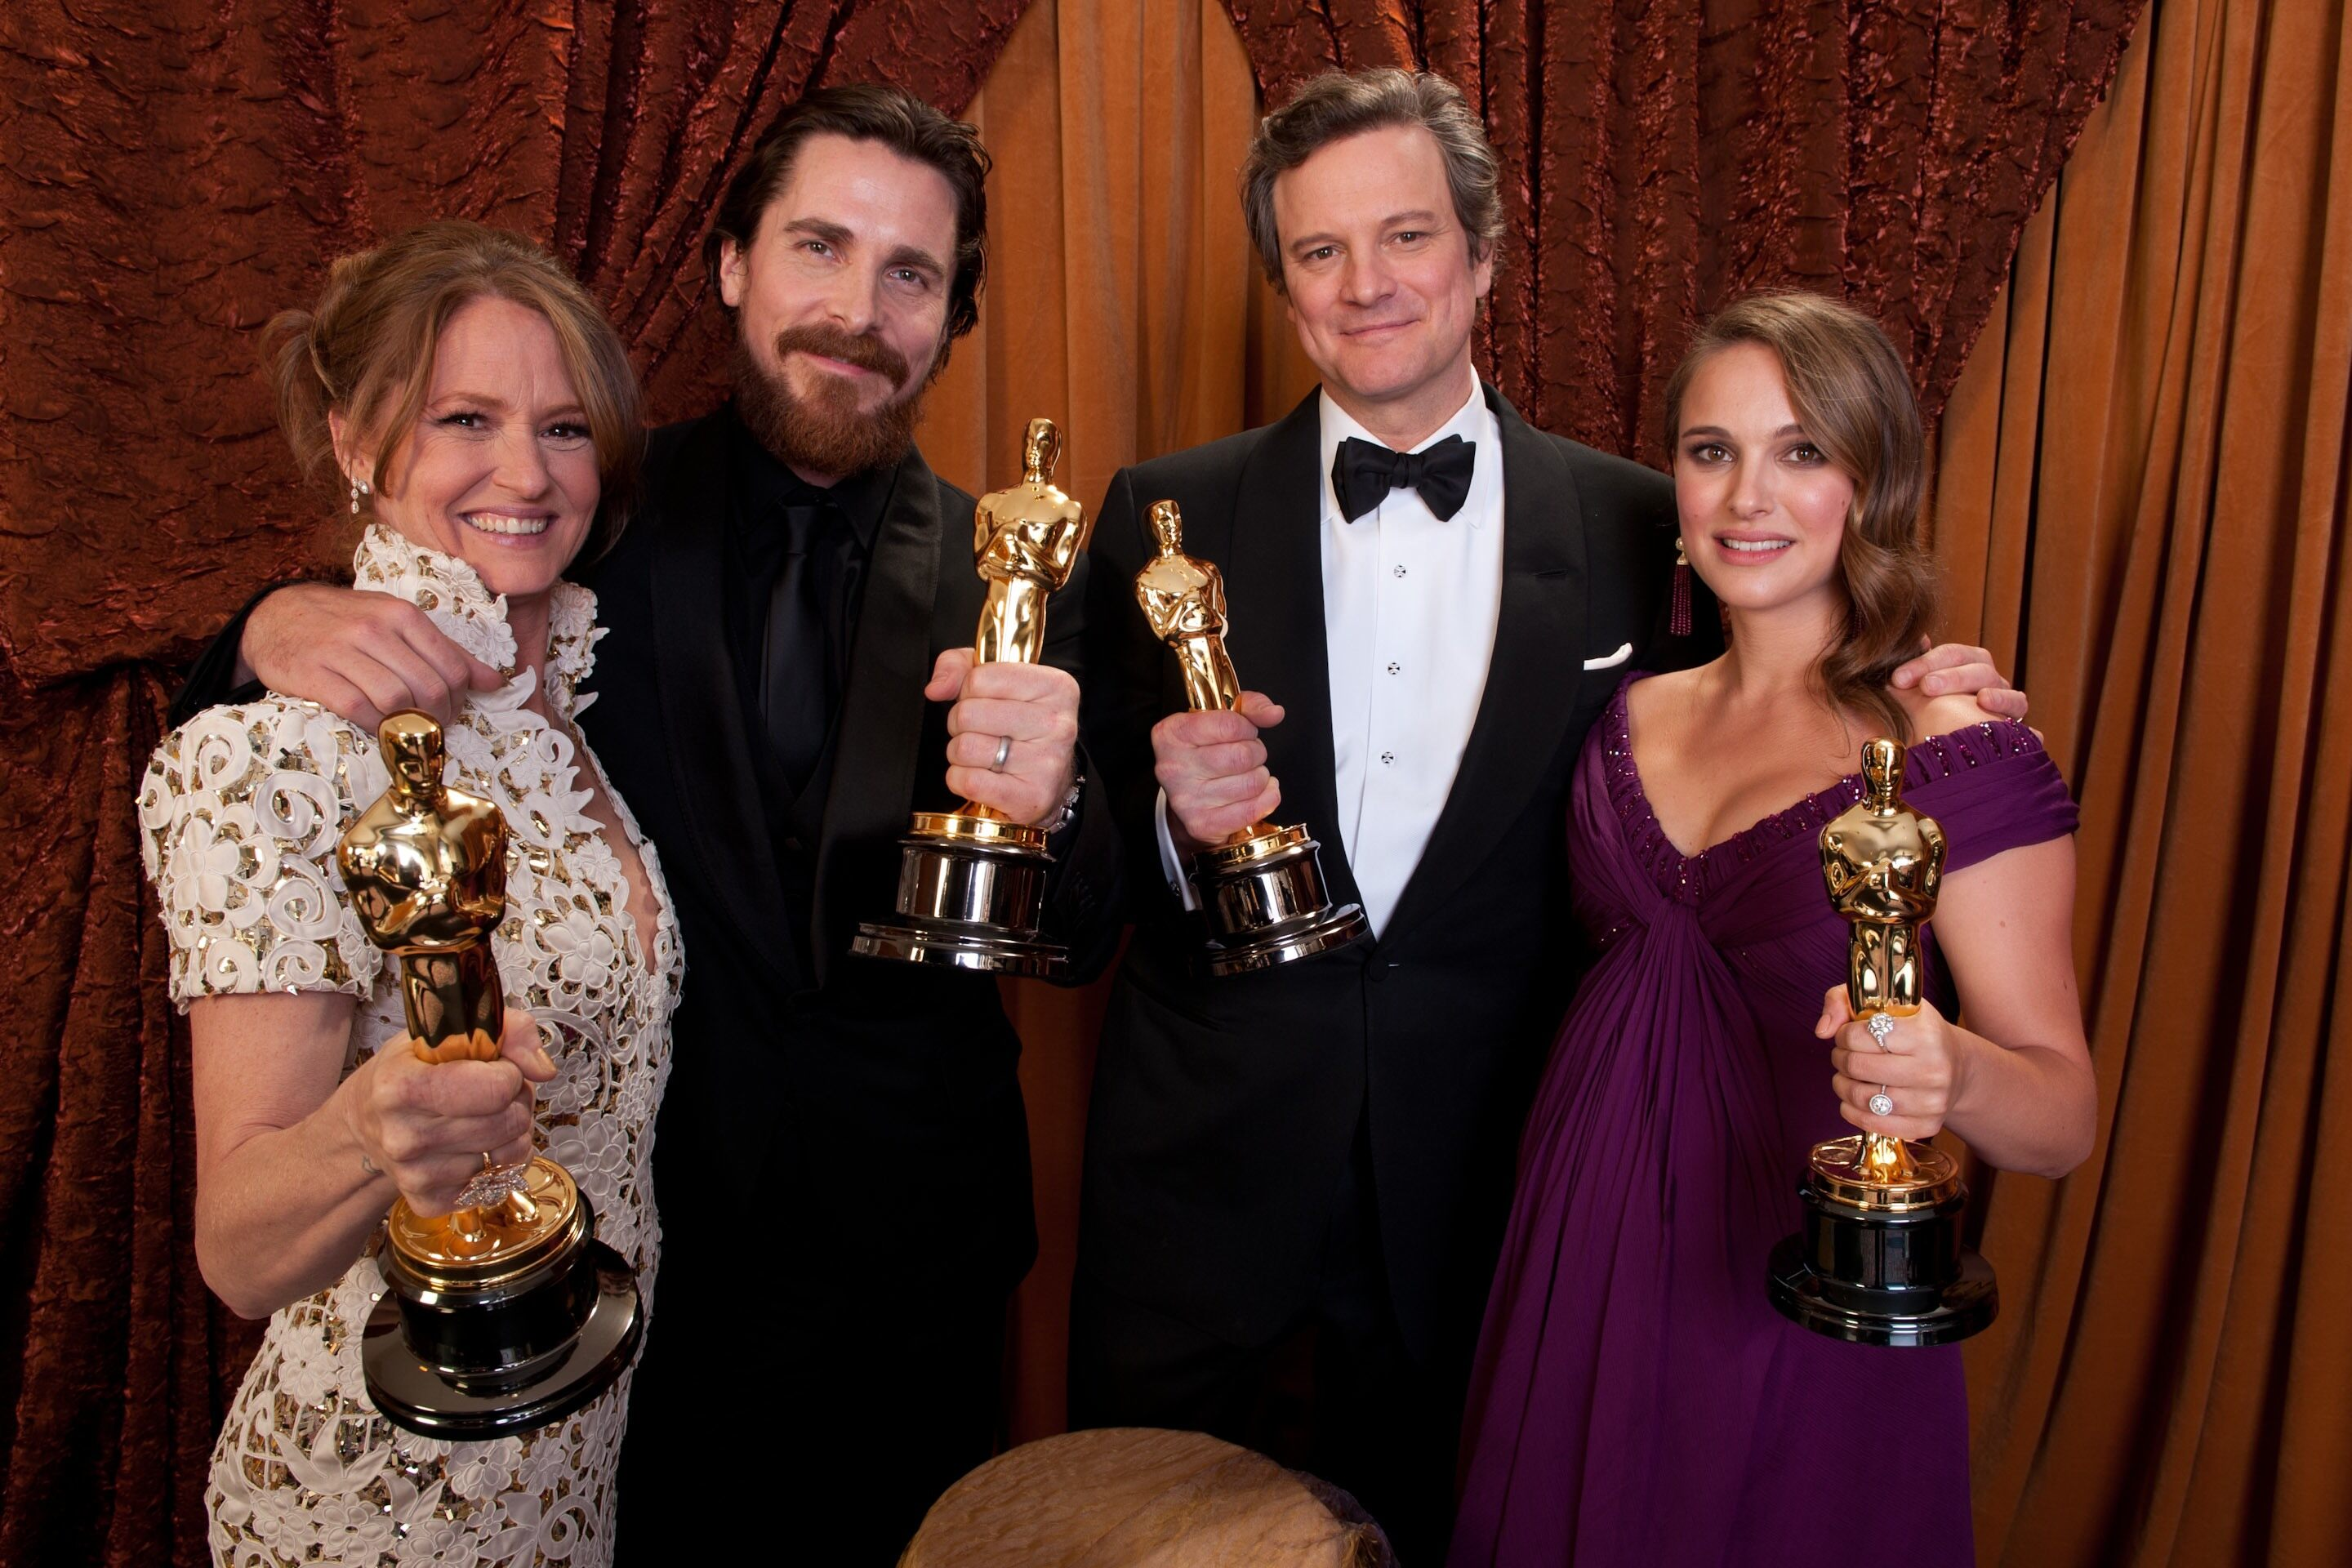 Oscar® winners Melissa Leo, Christian Bale, Colin Firth, and Natalie Portman.